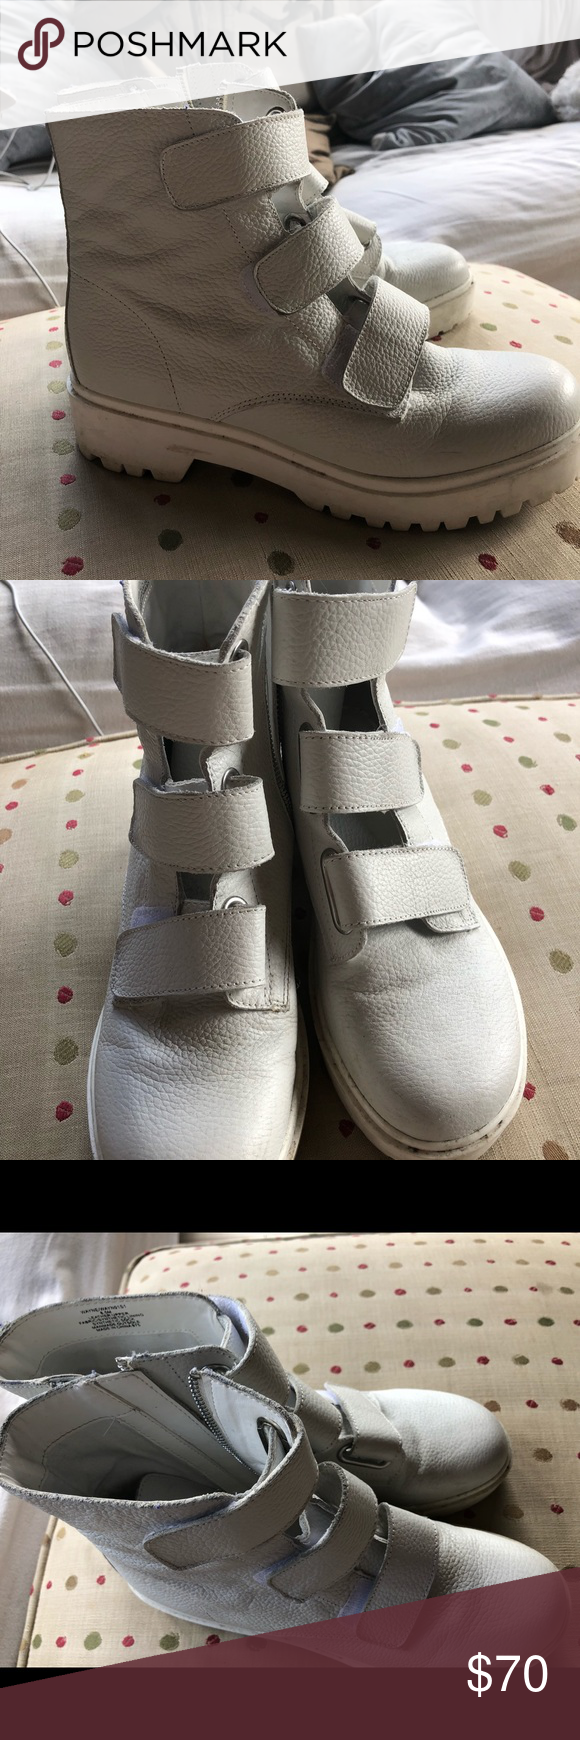 0693e6faf20 Steve Madden Wayne Boots White pleather boots Great for winter ...